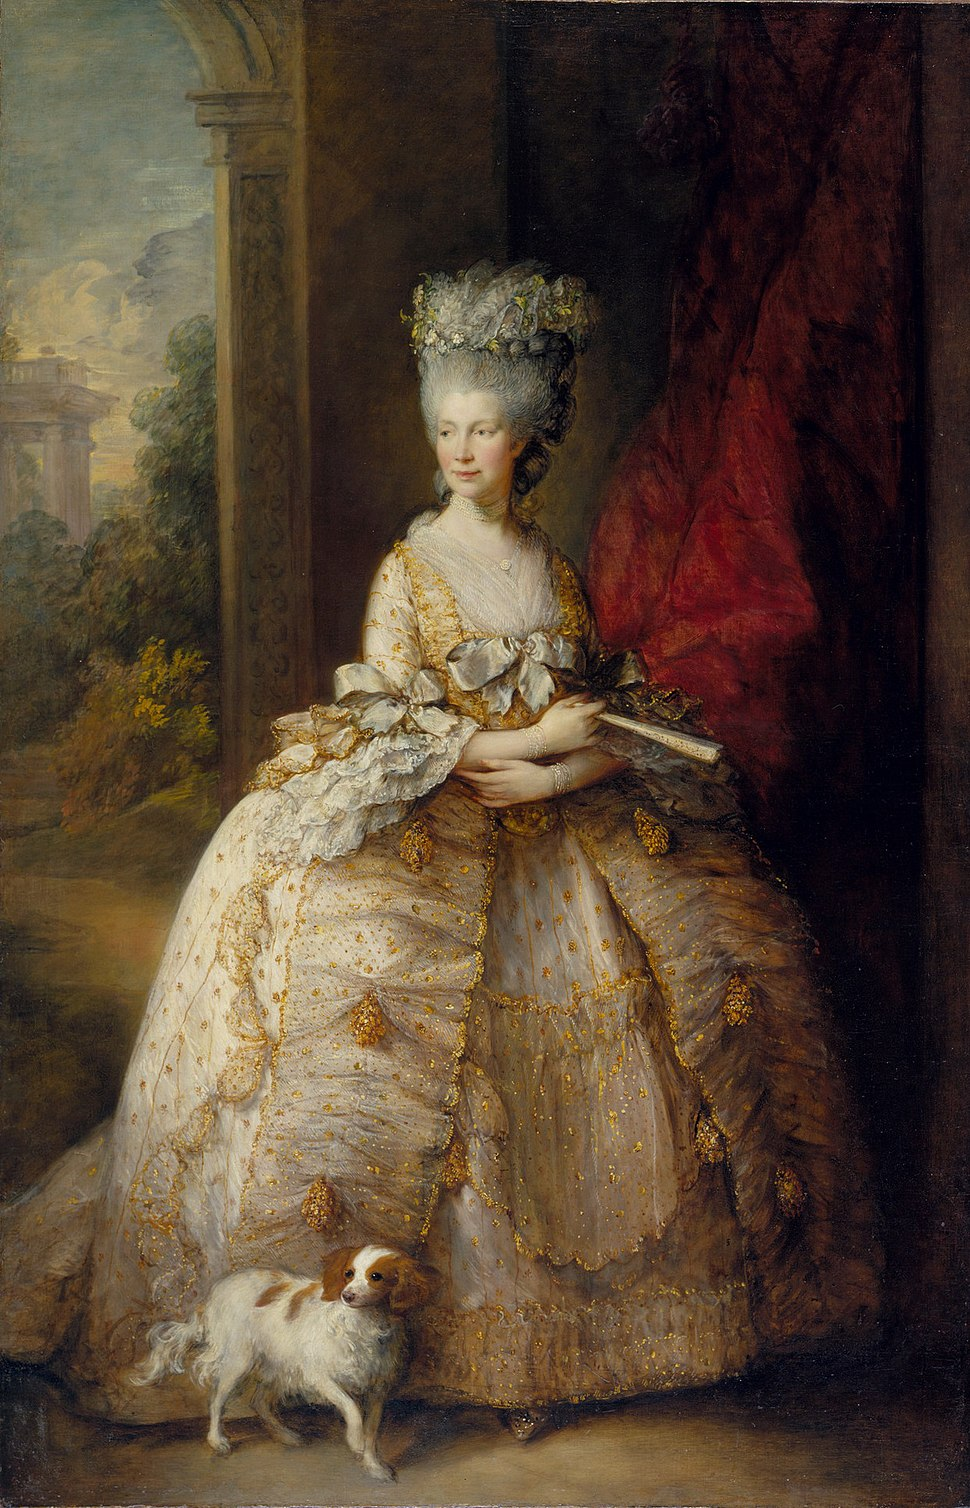 Queen Charlotte, by studio of Thomas Gainsborough